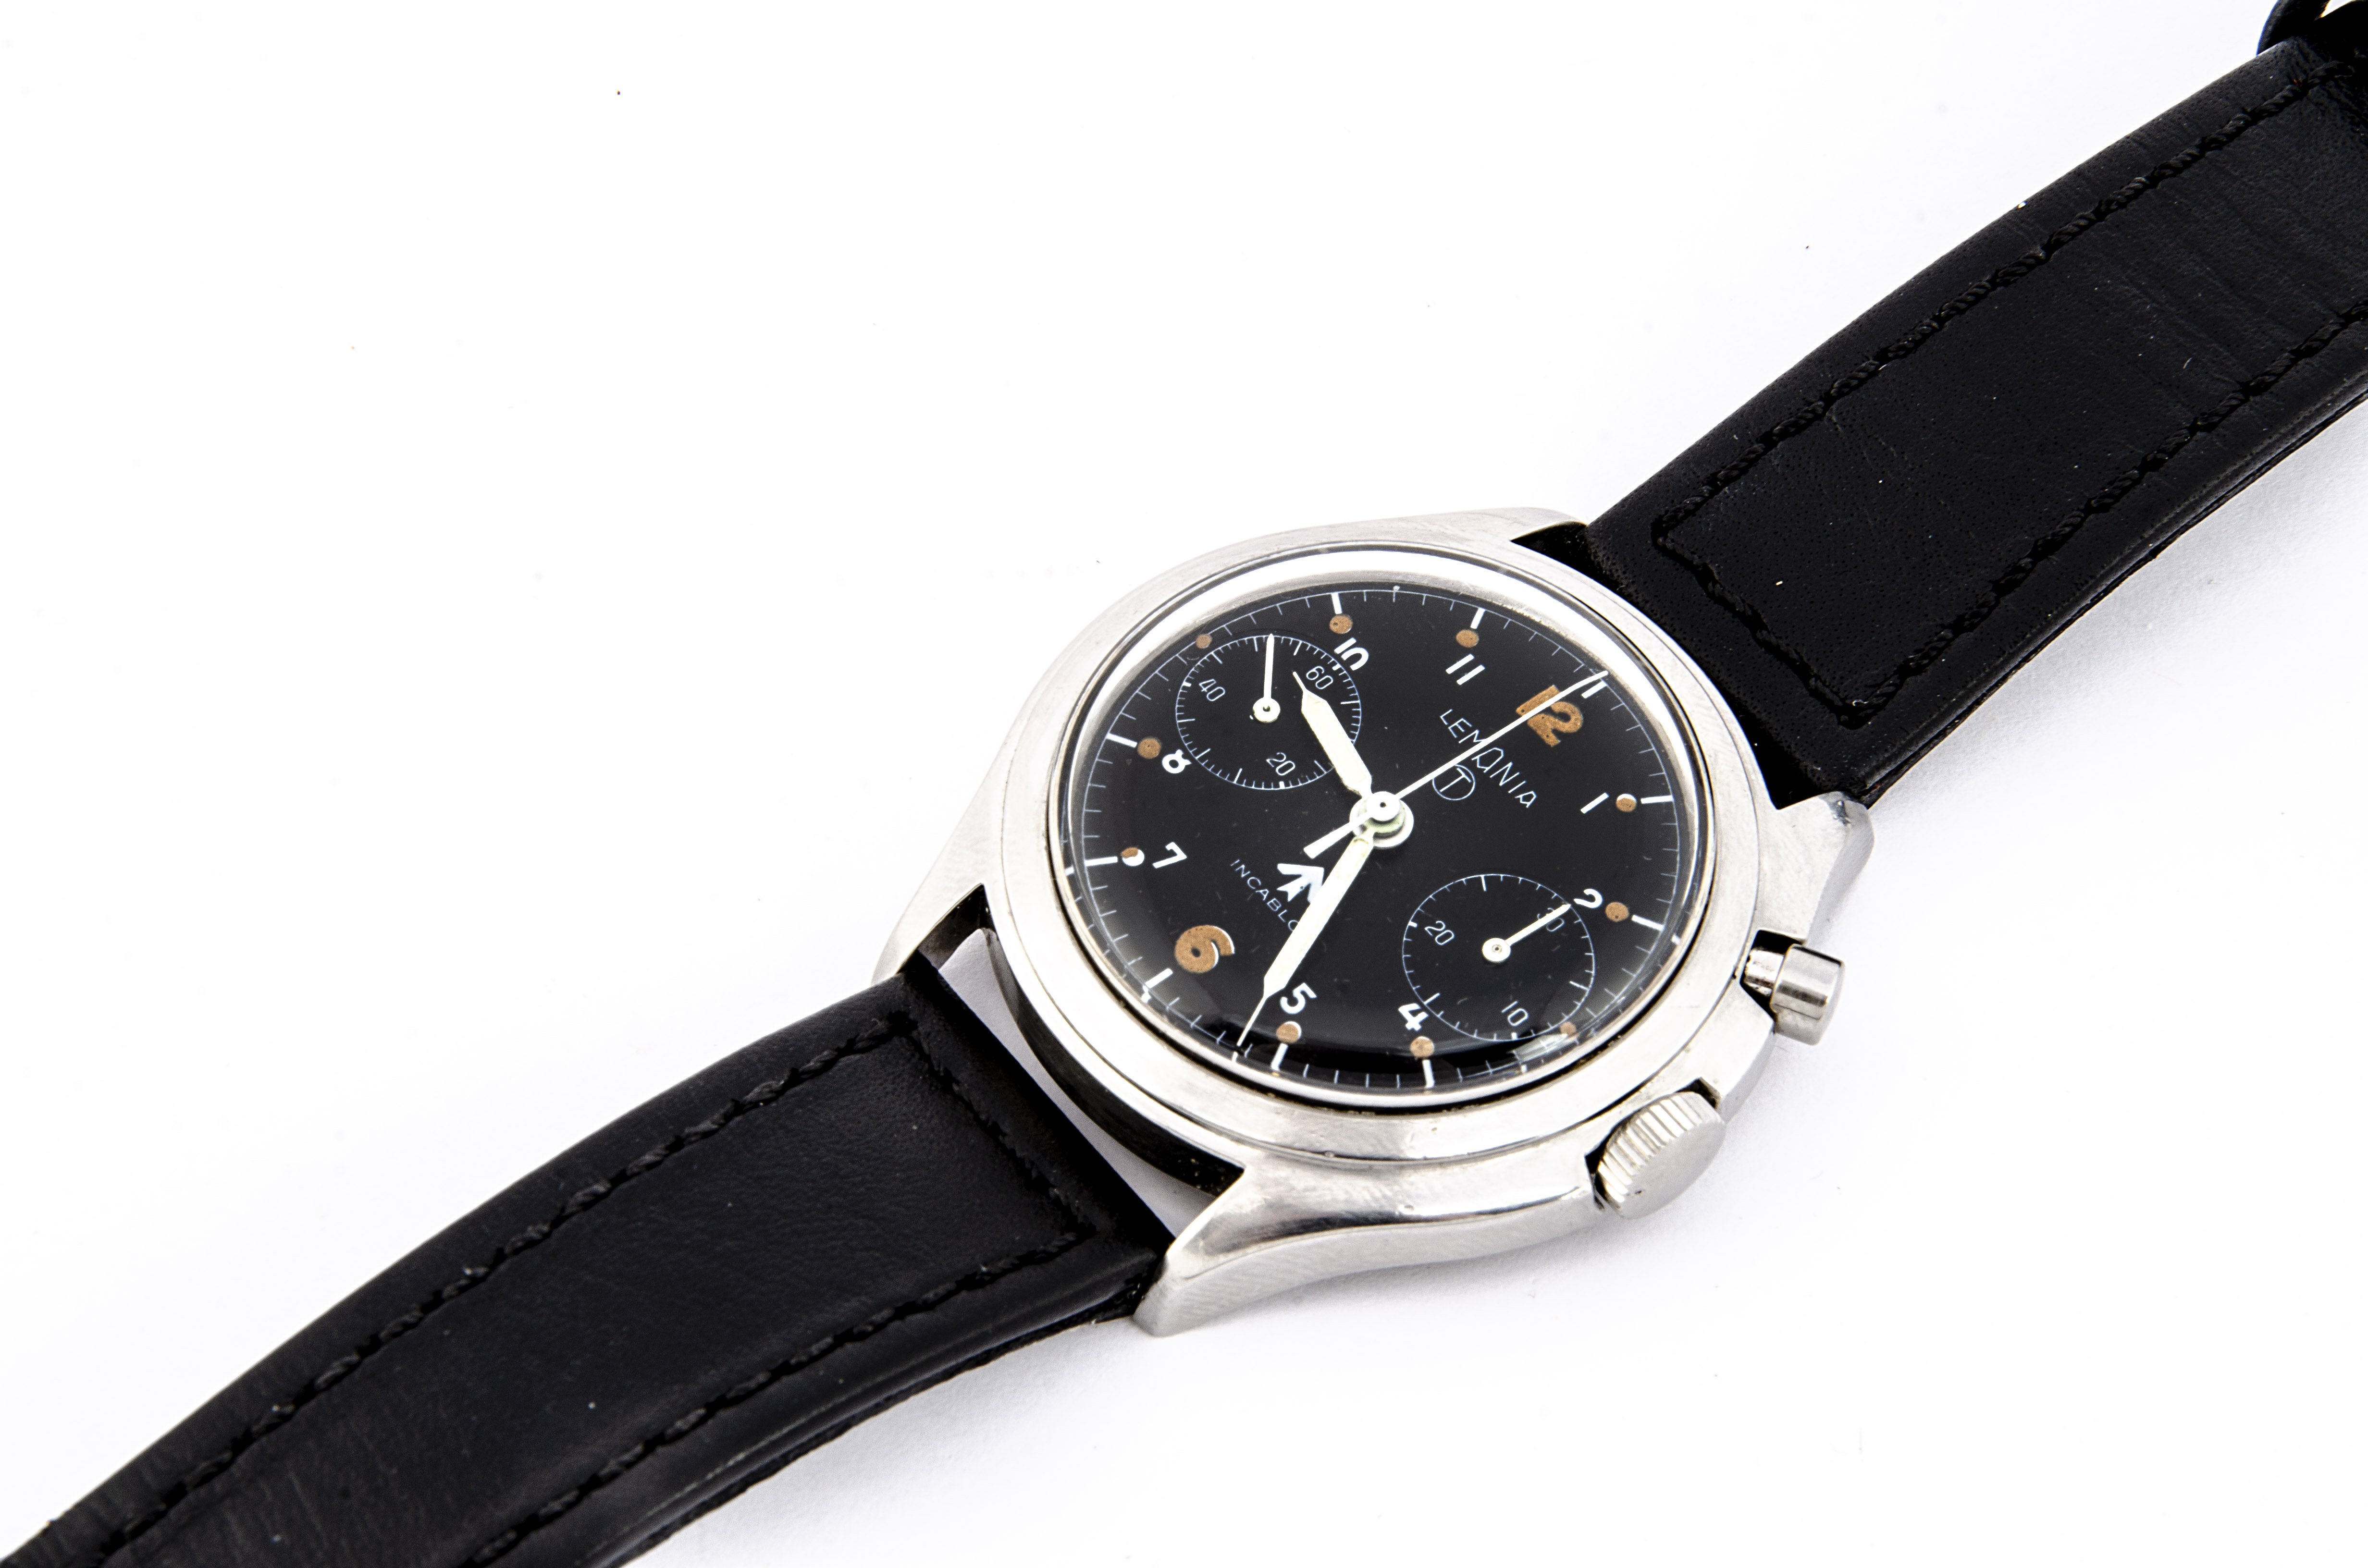 A c1960s Lemania RN / FAA single push chronograph stainless steel wristwatch, 39mm case, running and